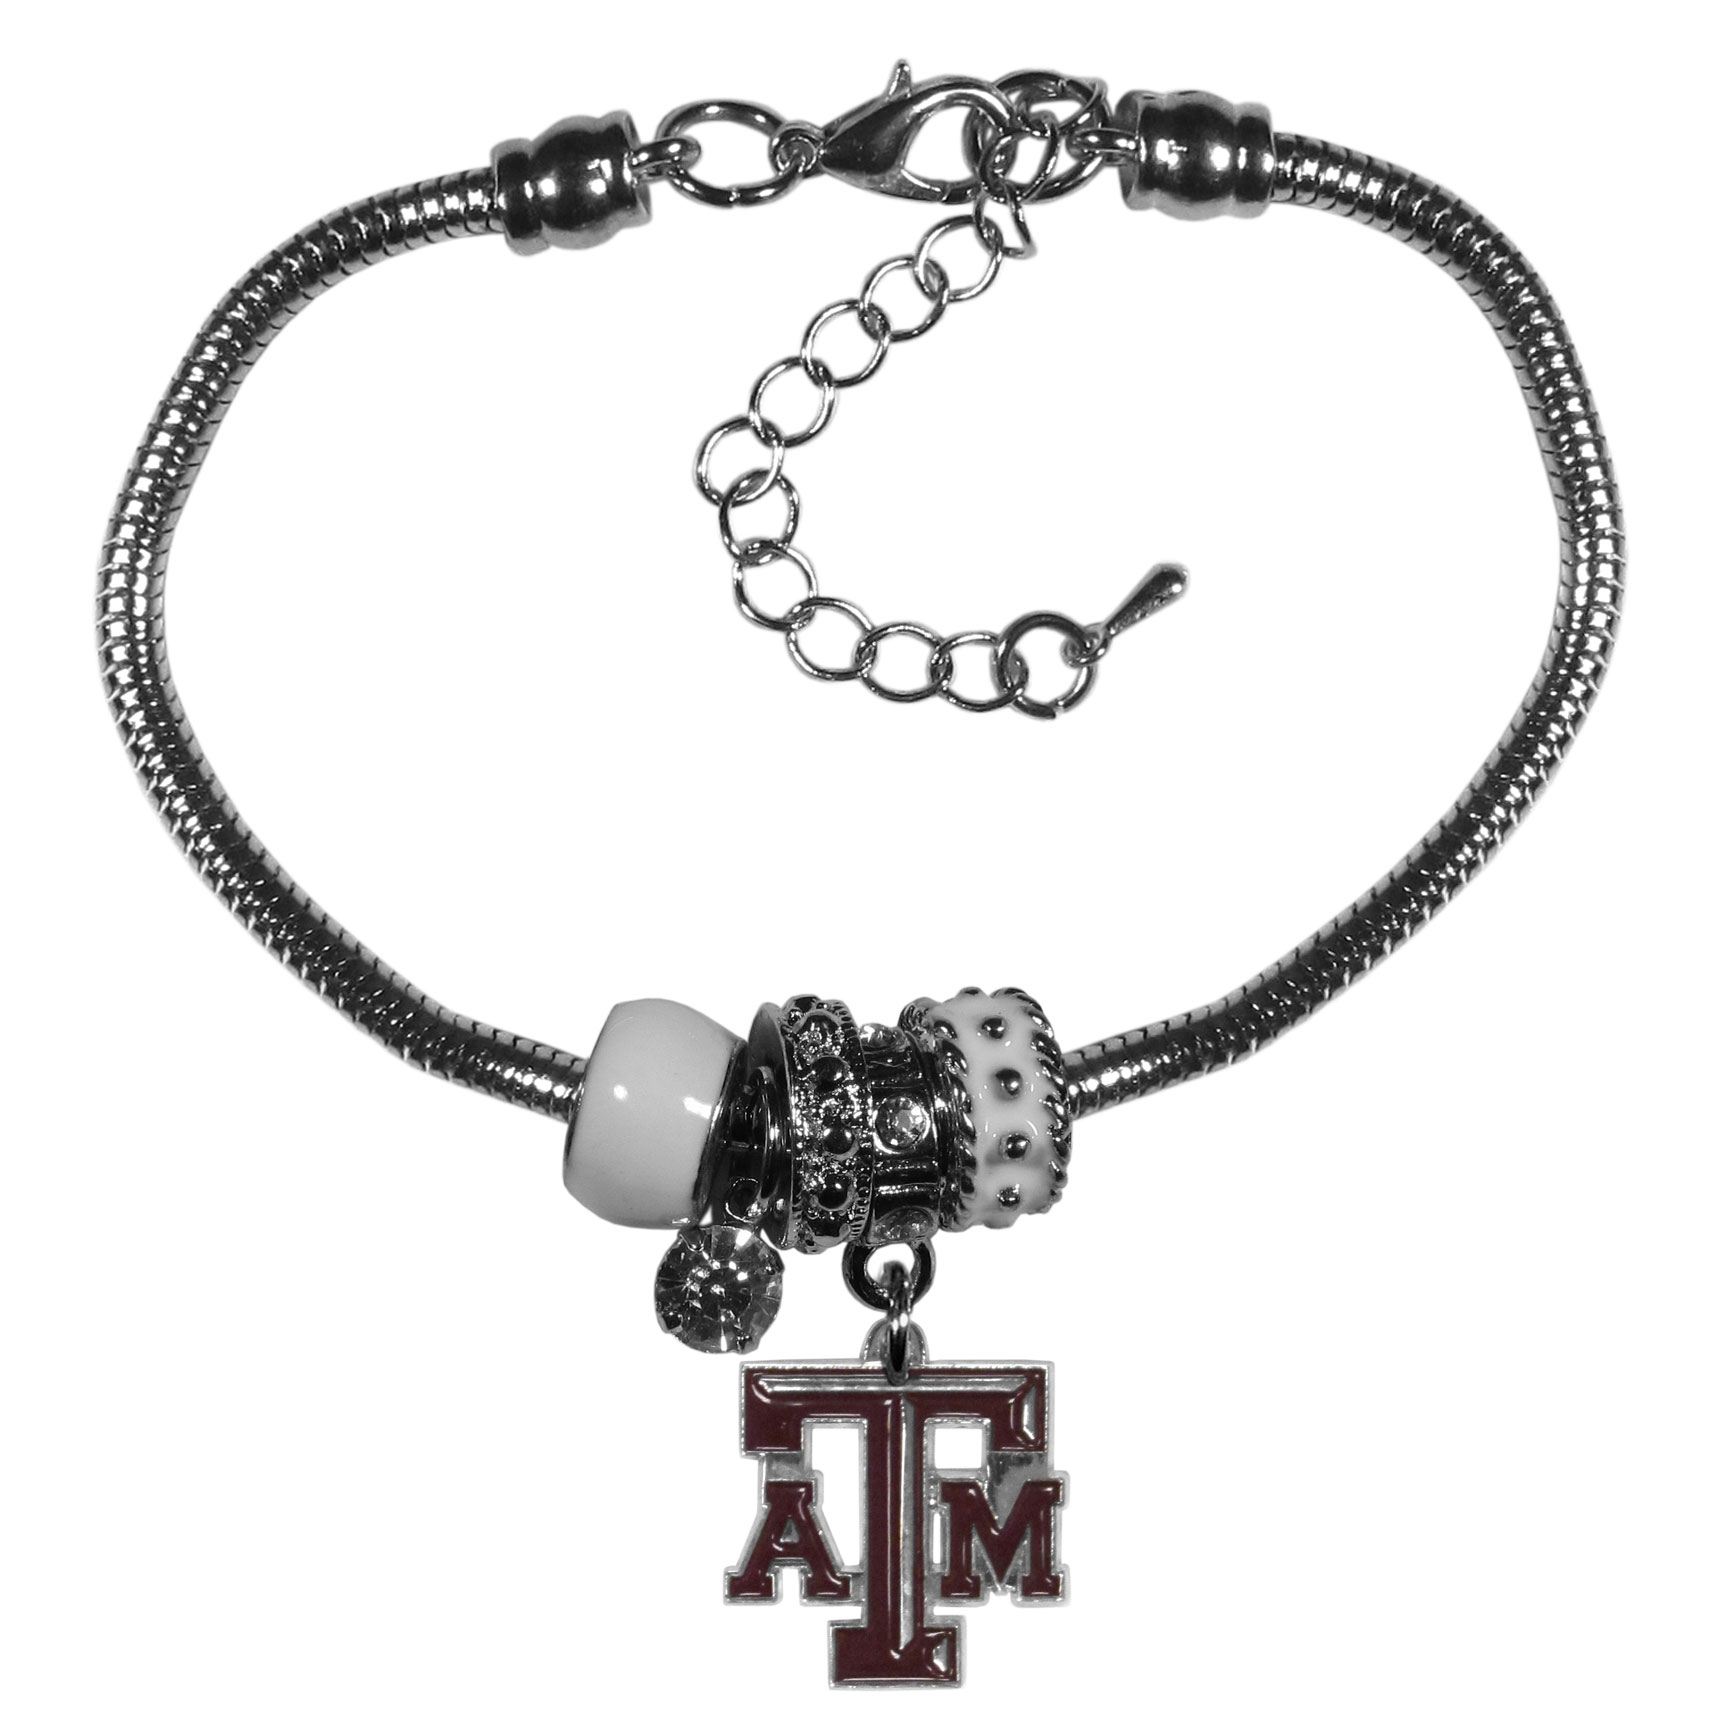 Texas A and M Aggies Euro Bead Bracelet - We have combined the wildly popular Euro style beads with your favorite team to create our  Texas A & M Aggies bead bracelet. The 7.5 inch snake chain with 2 inch extender features 4 Euro beads with enameled team colors and rhinestone accents with a high polish, nickel free charm and rhinestone charm. Perfect way to show off your team pride.